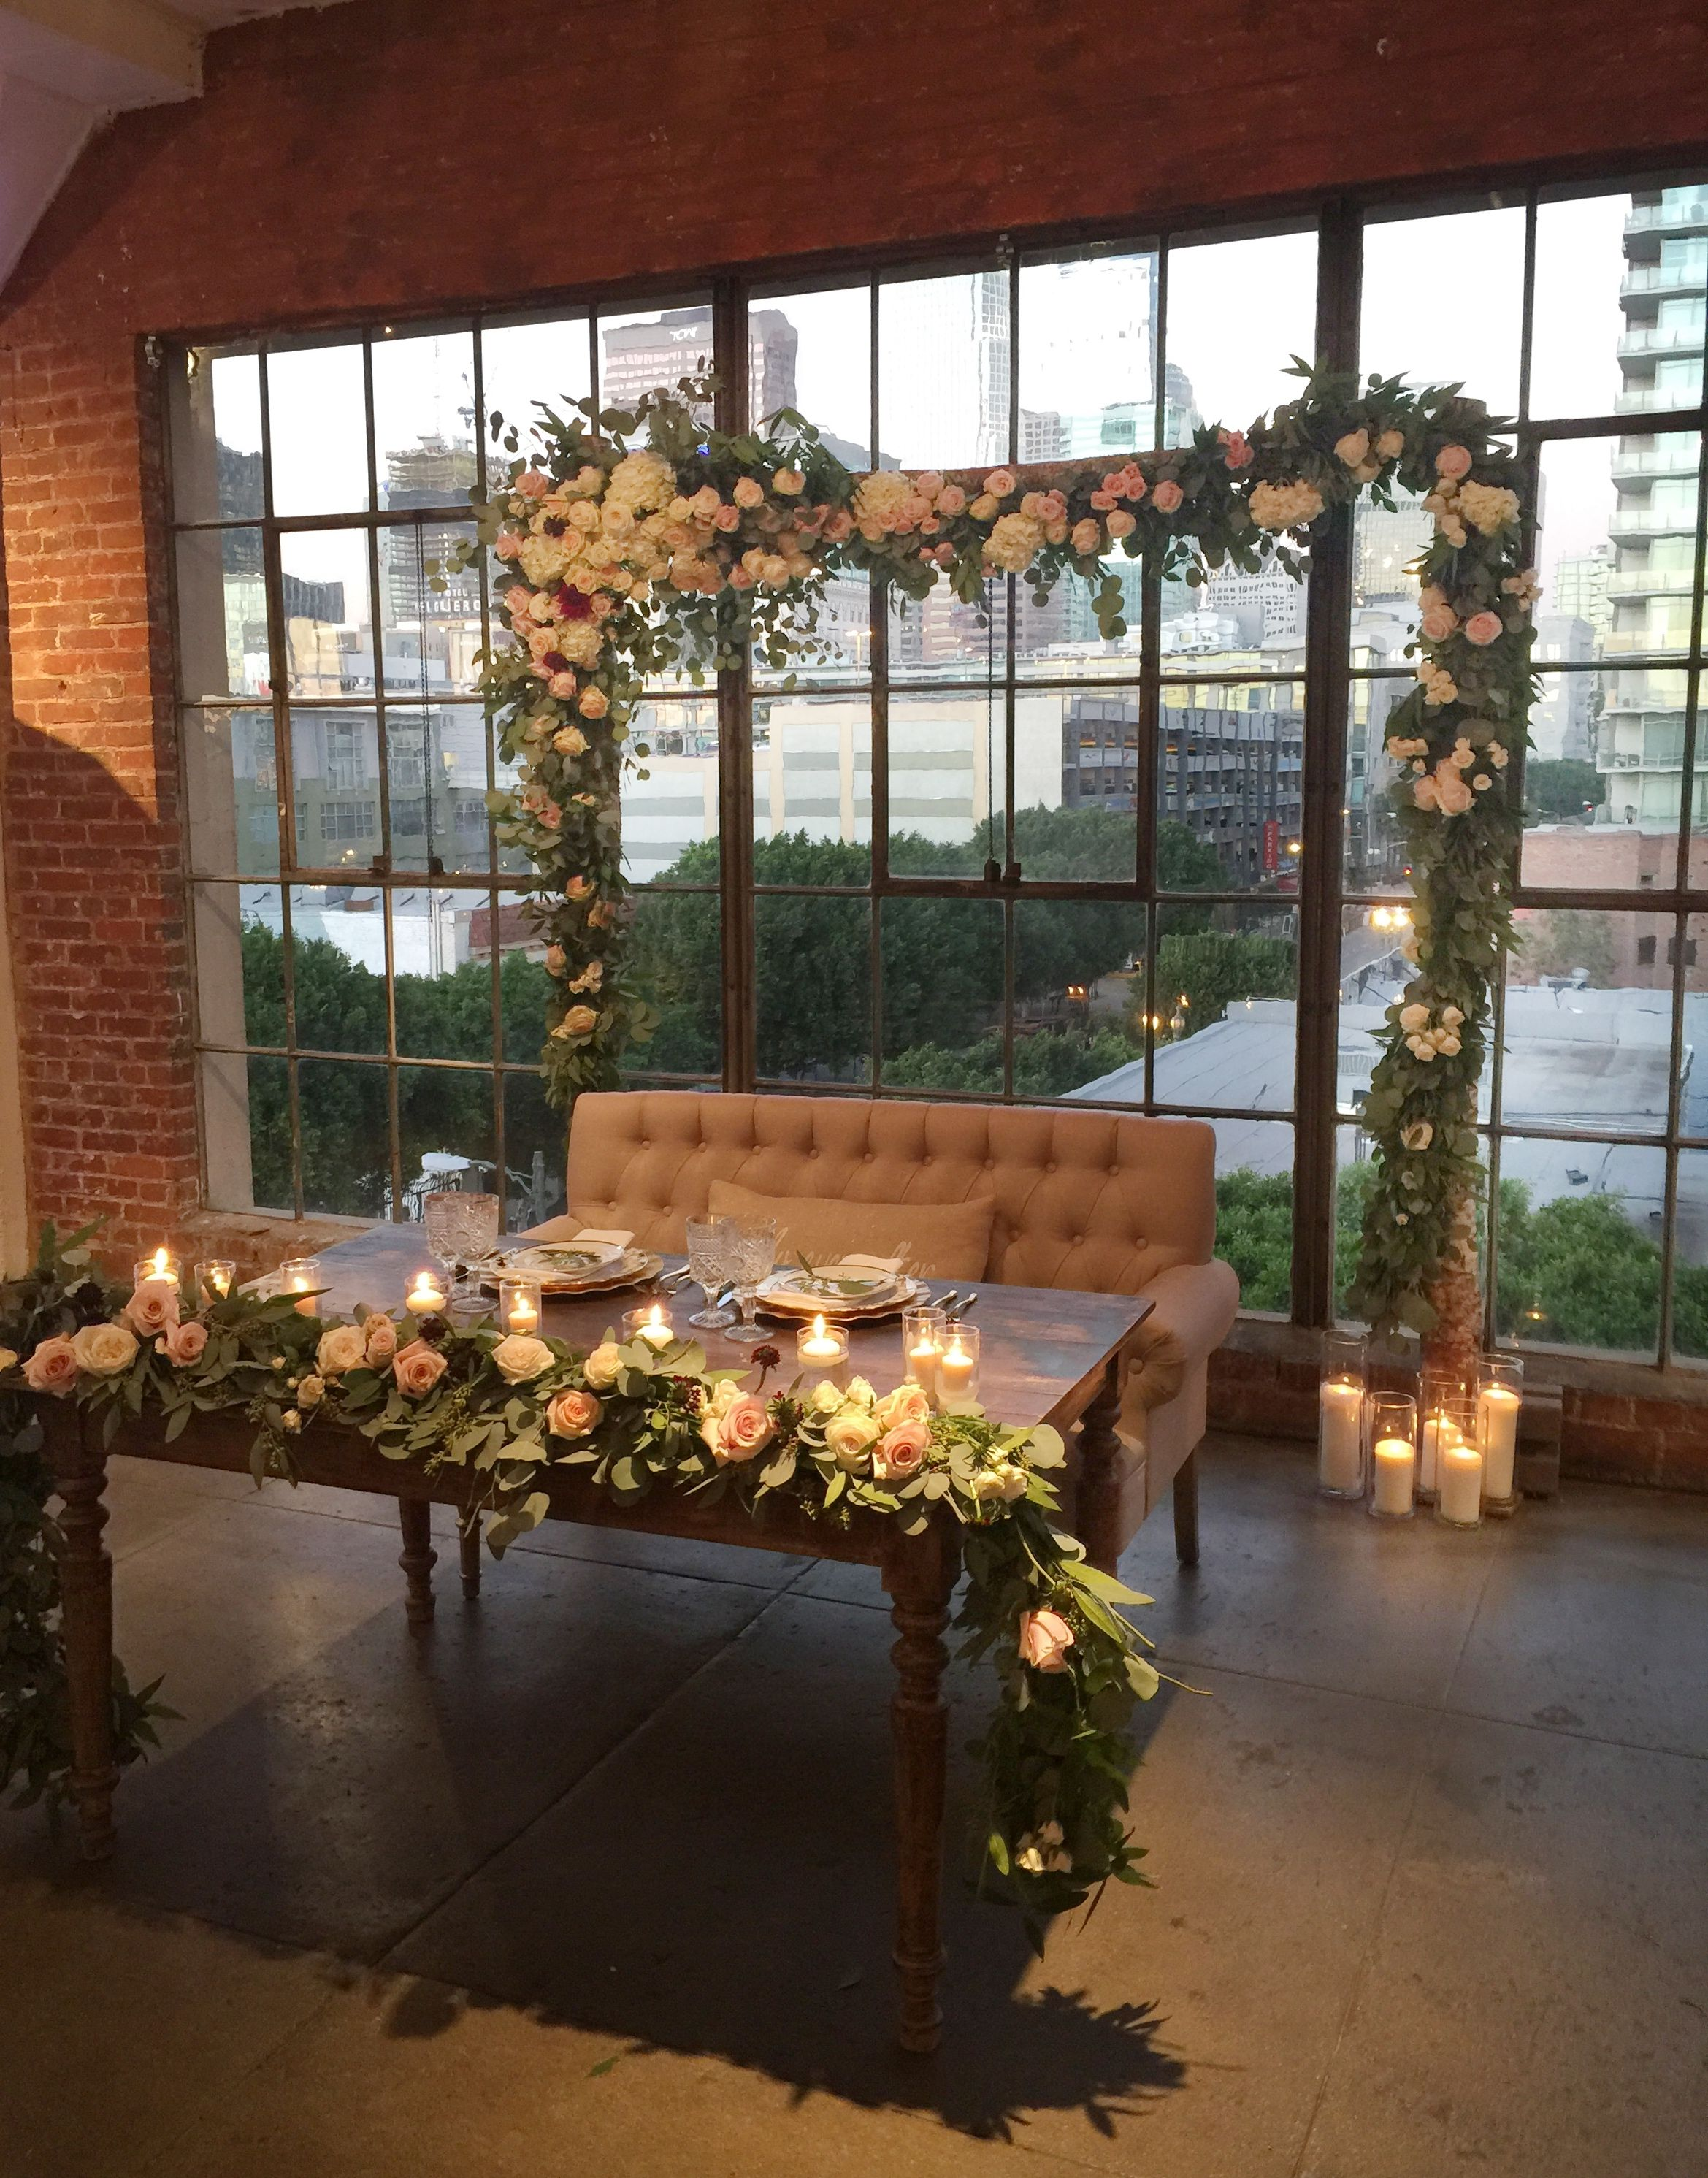 Urban wedding sweetheart table ideas downtown los angeles loft urban wedding sweetheart table ideas downtown los angeles loft wedding tap the link to shop on our official online store you can also join our affiliate junglespirit Image collections